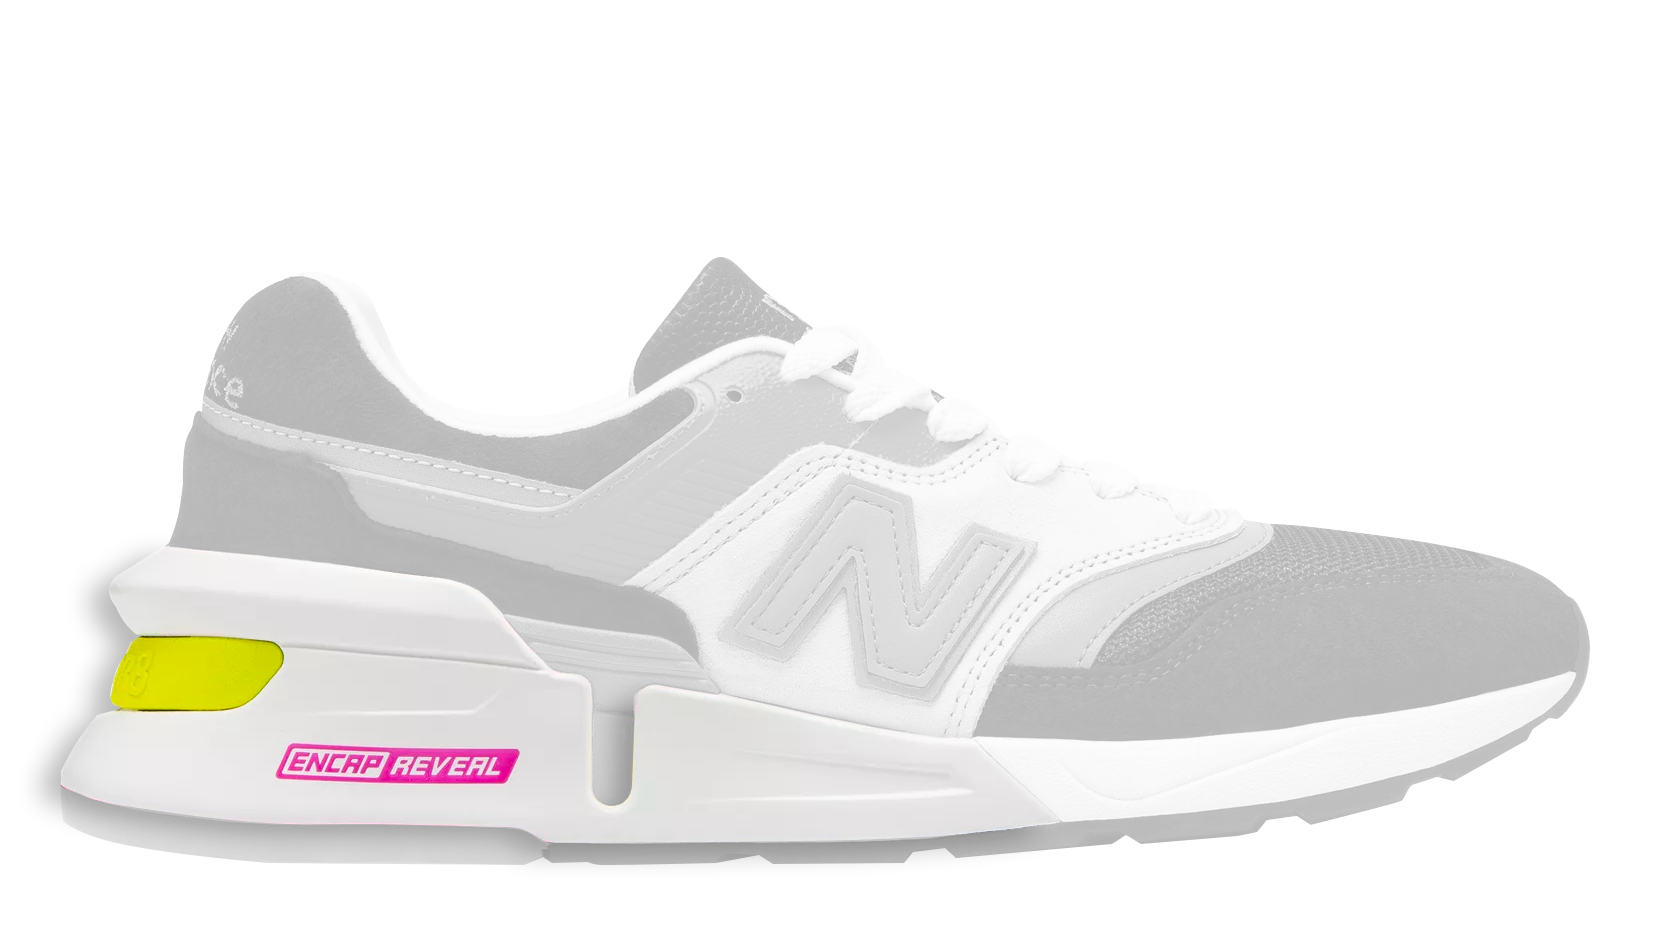 check out 6d439 4e96d A Family Portrait of the New Balance 997